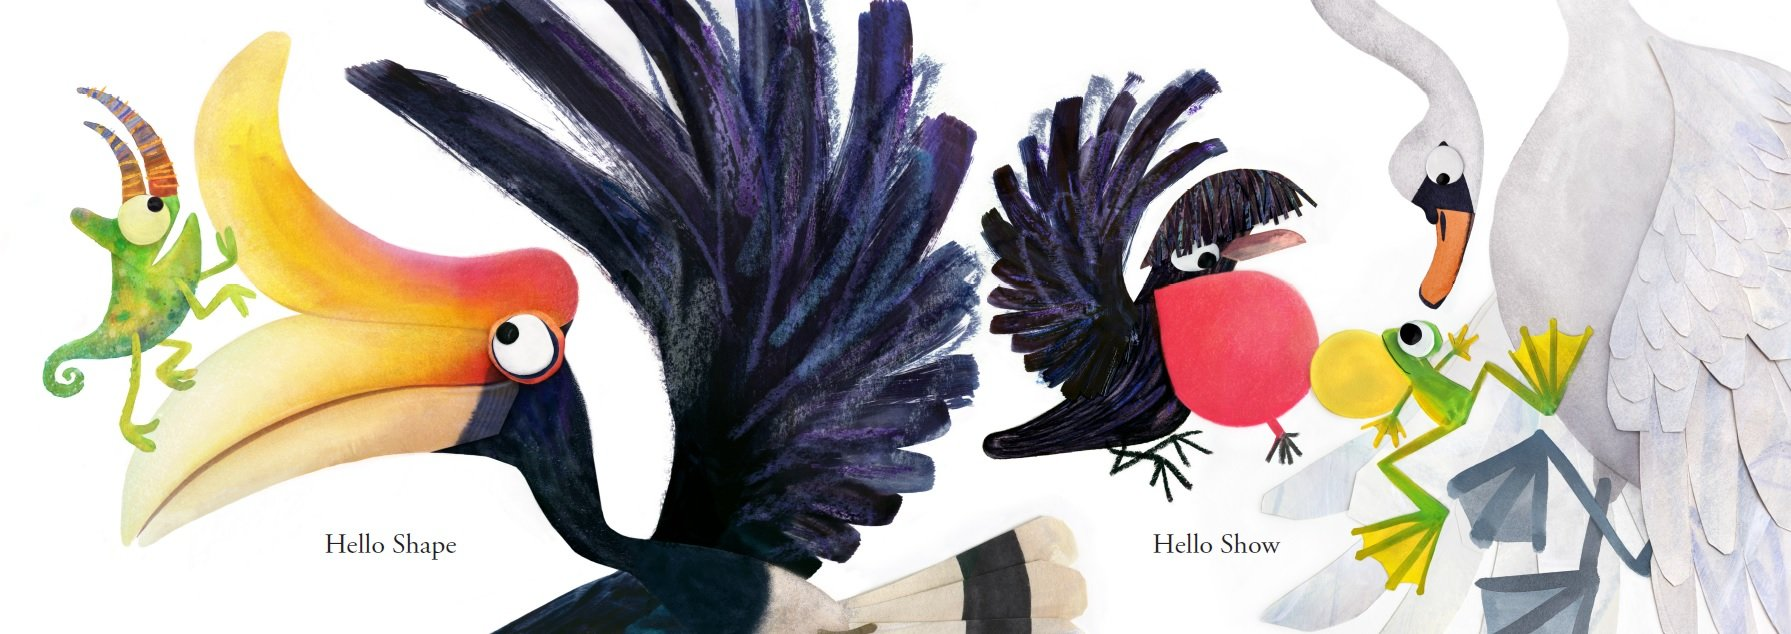 Hello Hello by Chronicle Books (Image #12)